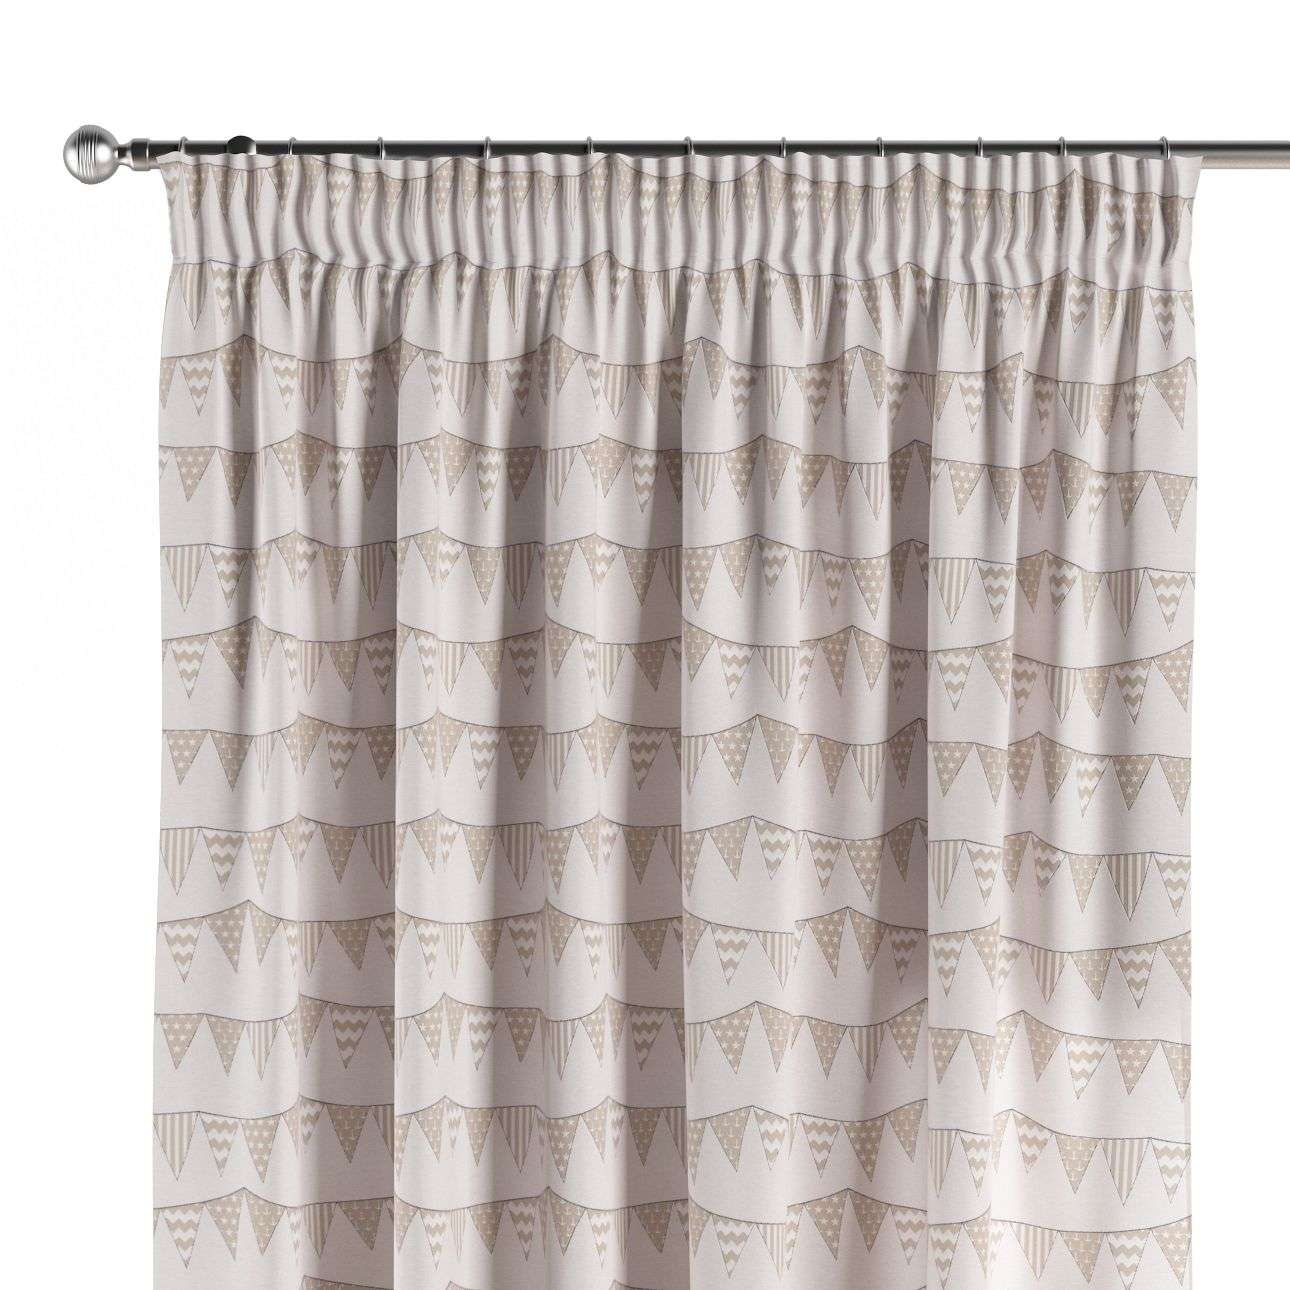 Pencil pleat curtains 130 x 260 cm (51 x 102 inch) in collection Marina, fabric: 140-65